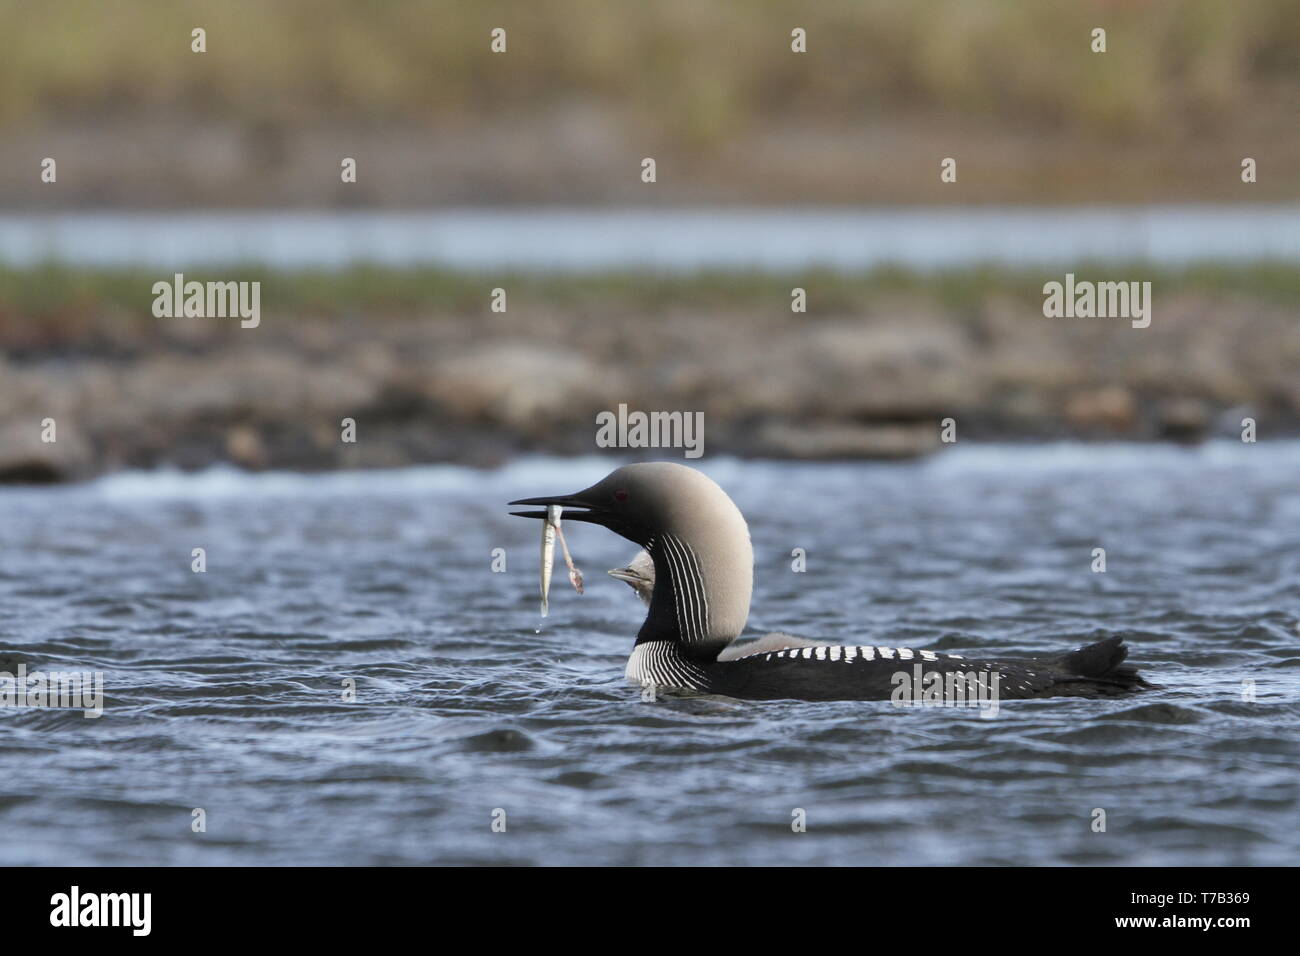 Pacific Loon or Pacific Diver fishing in arctic waters with a fish in its mouth, near Arviat Nunavut, Canada - Stock Image